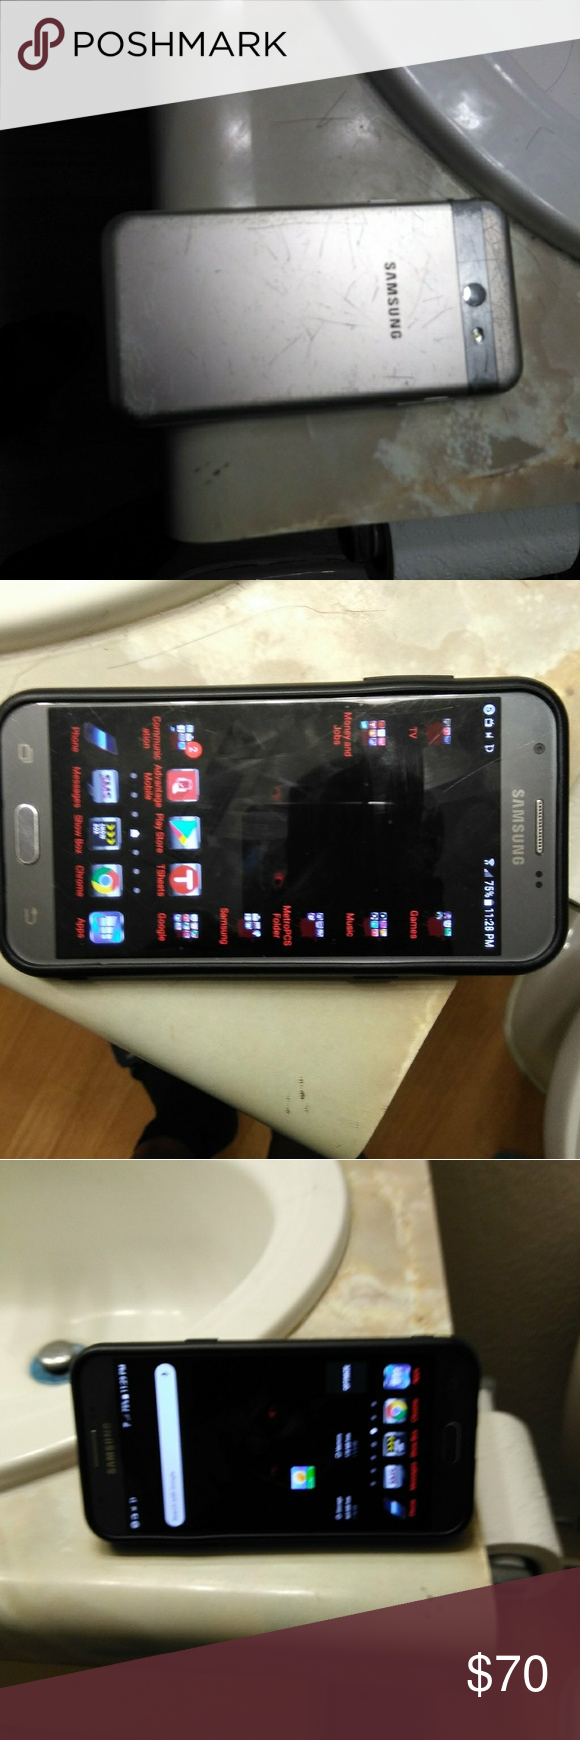 Samsung Galaxy J3 Prime with red case It has a few scratches